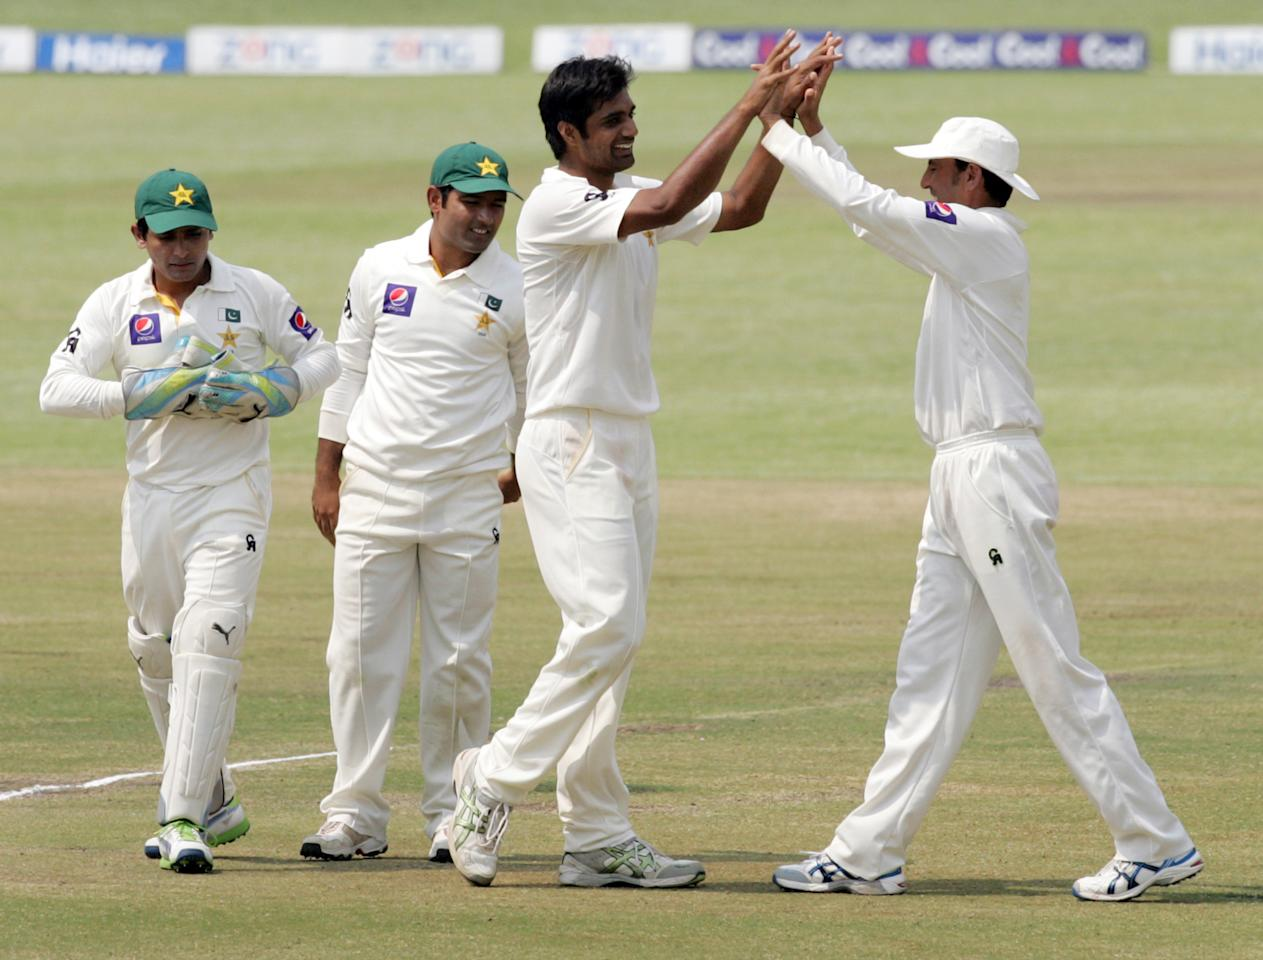 Pakistan's players congratulate their teammate bowler Rahat Ali (C) for a wickket during the fourth day of the second cricket test match between Pakistan and hosts Zimbabwe at the Harare Sports Club on September 13, 2013.  AFP PHOTO / JEKESAI NJIKIZANA        (Photo credit should read JEKESAI NJIKIZANA/AFP/Getty Images)